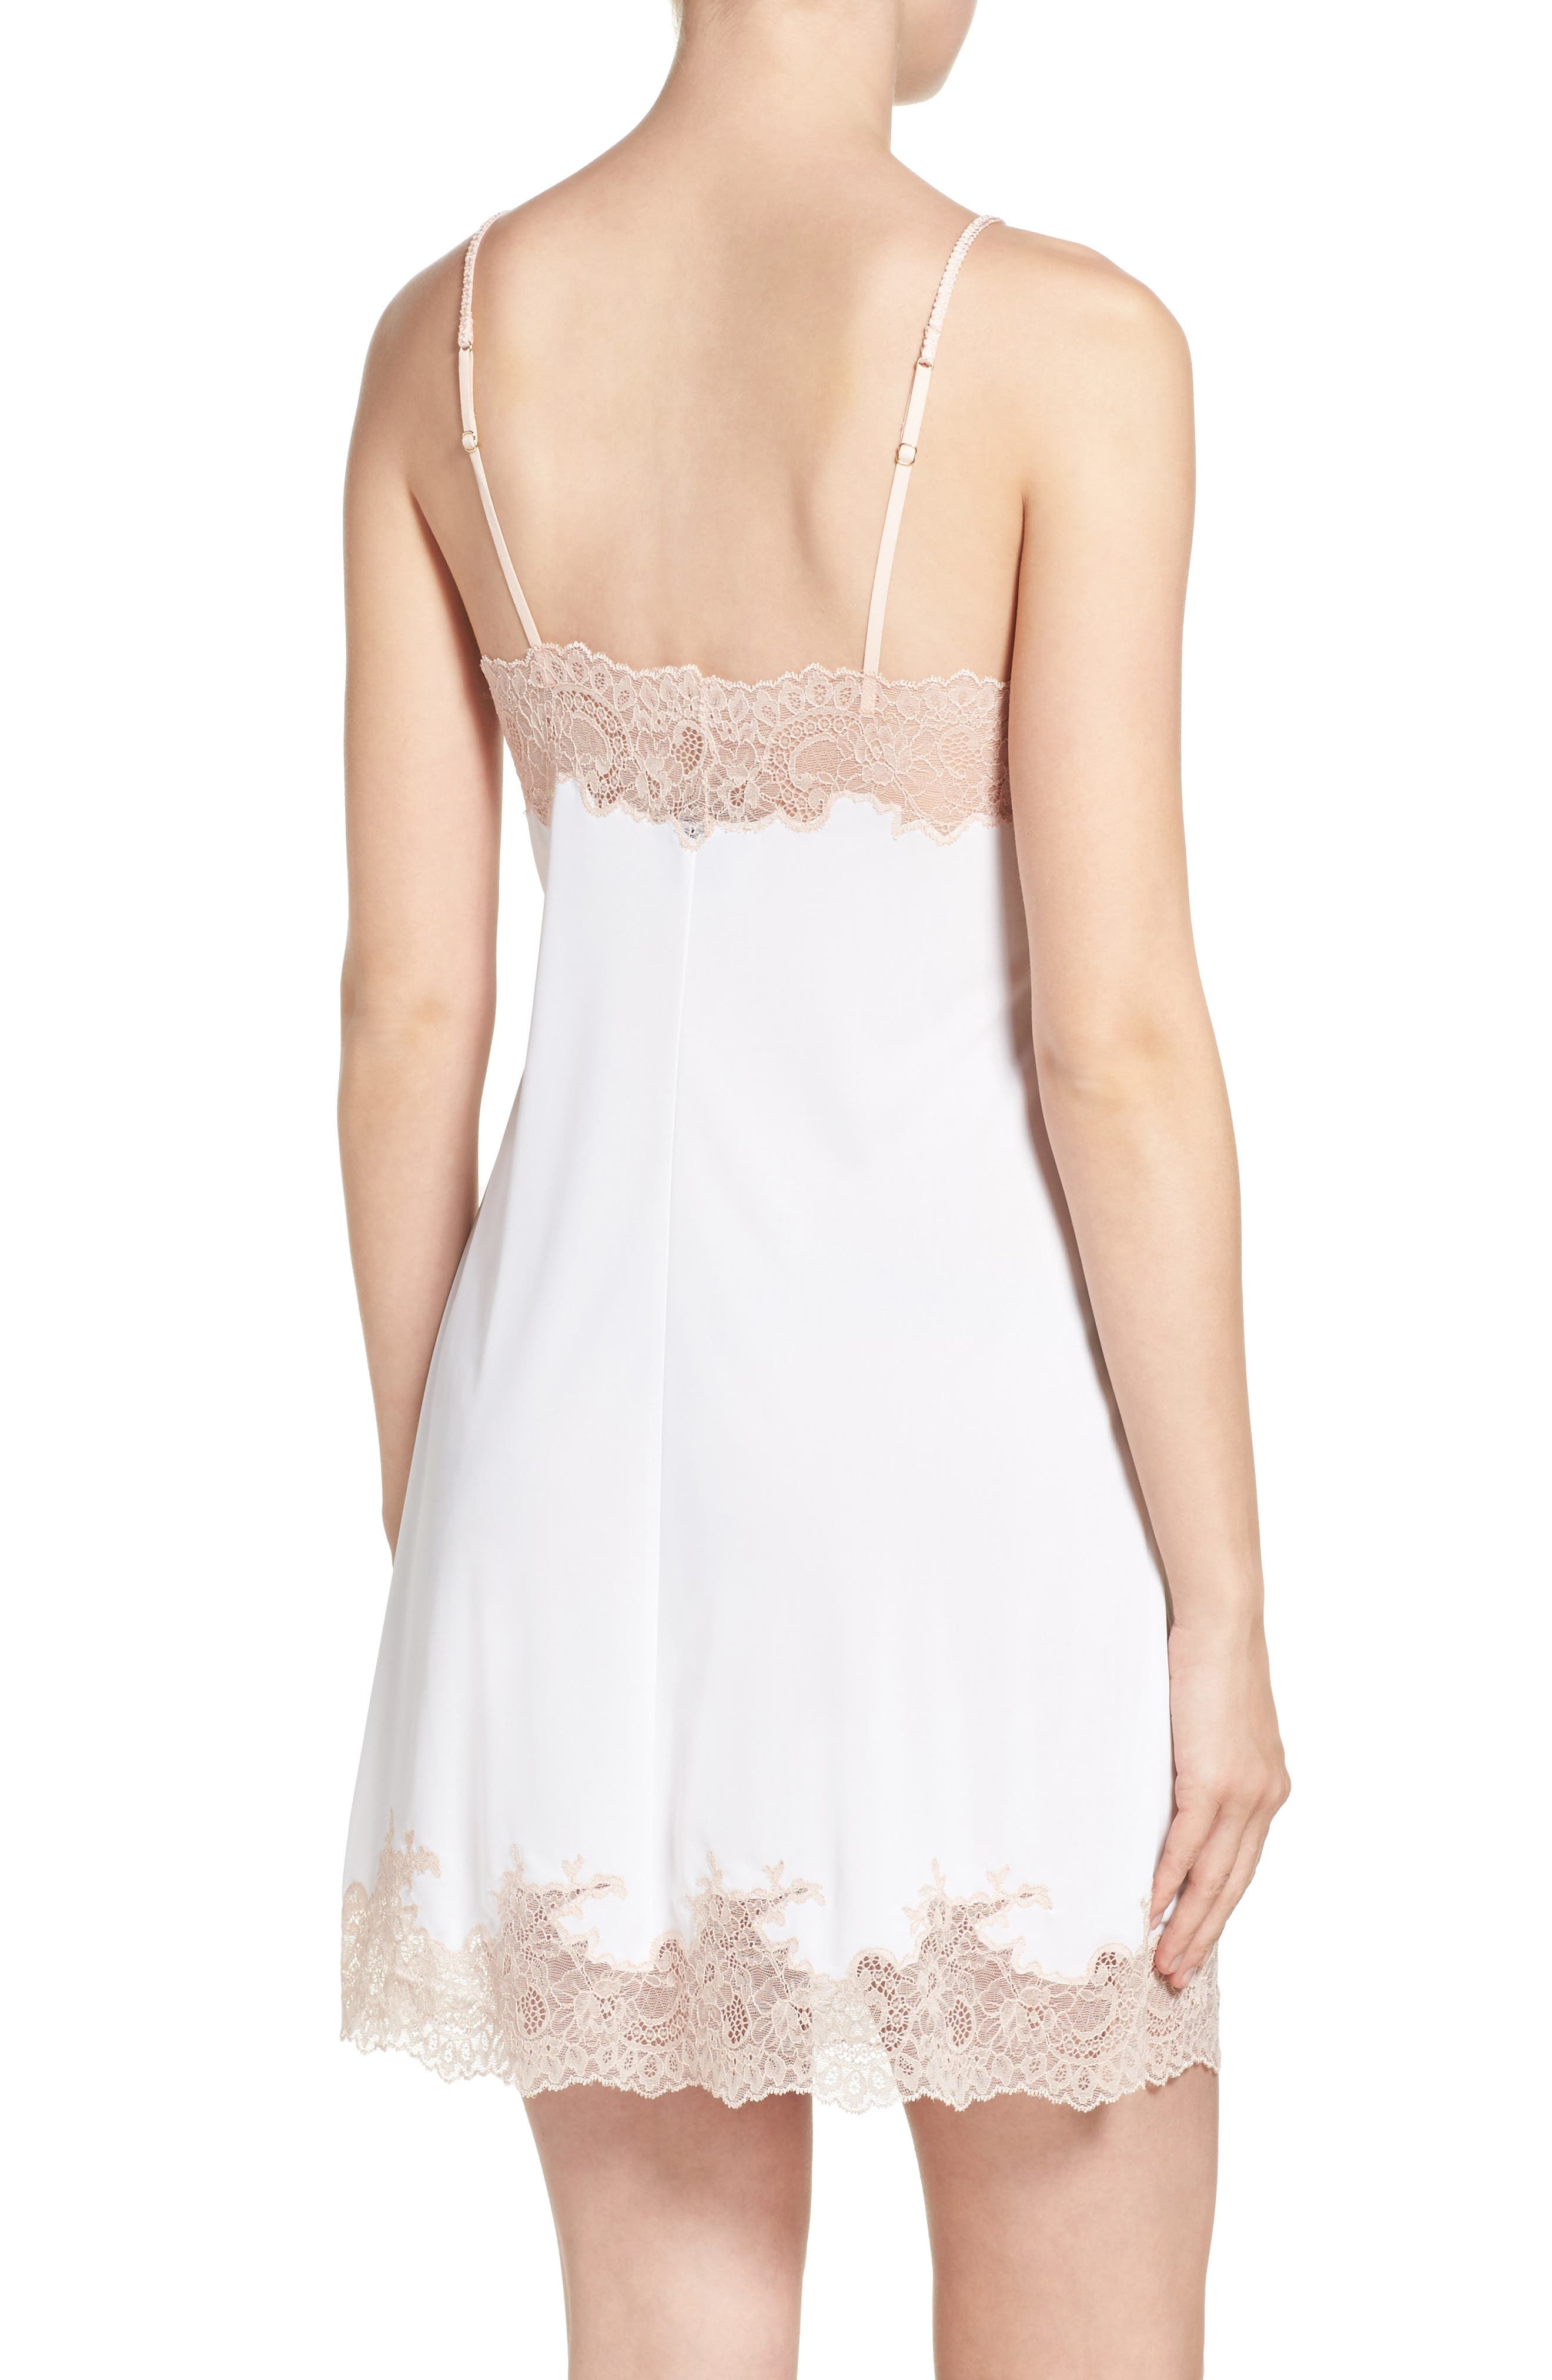 Enchant Chemise,                             Alternate thumbnail 2, color,                             IVORY/ CAMEO ROSE LACE